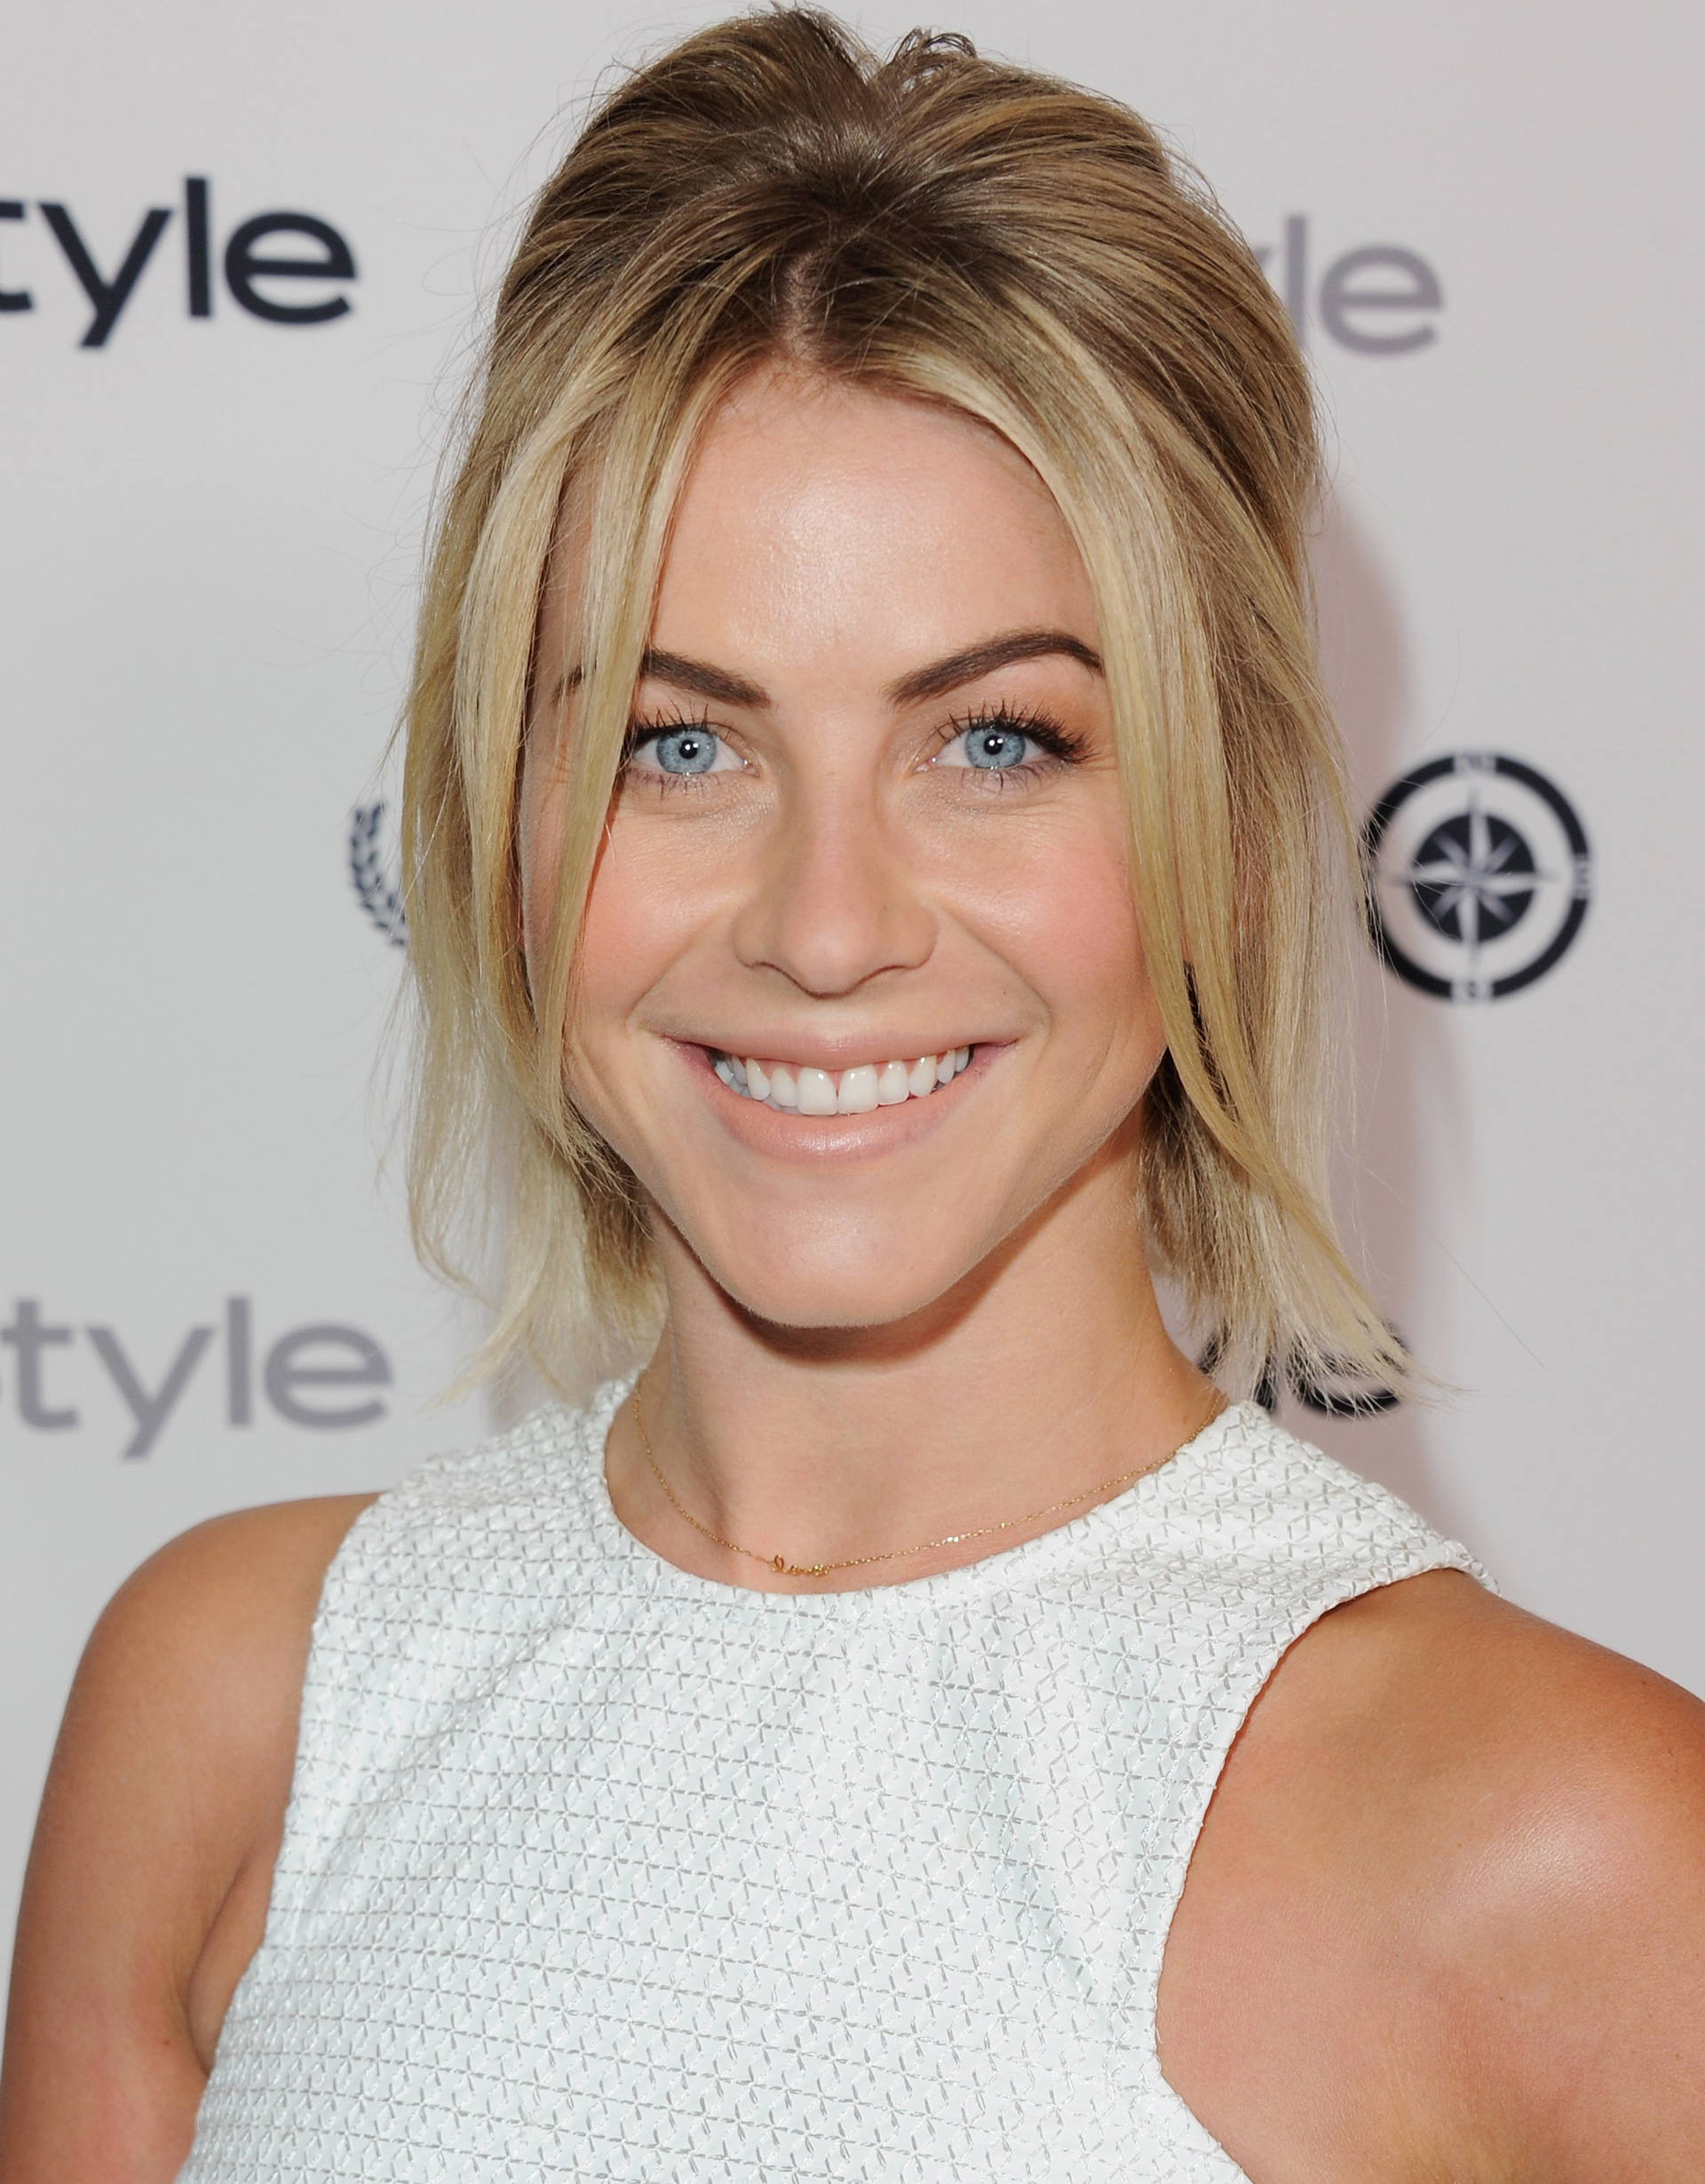 julianne hough hair styles julianne hough hairstyles fade haircut 4763 | 54ff6da9b40f3 julianne hough half pony s2